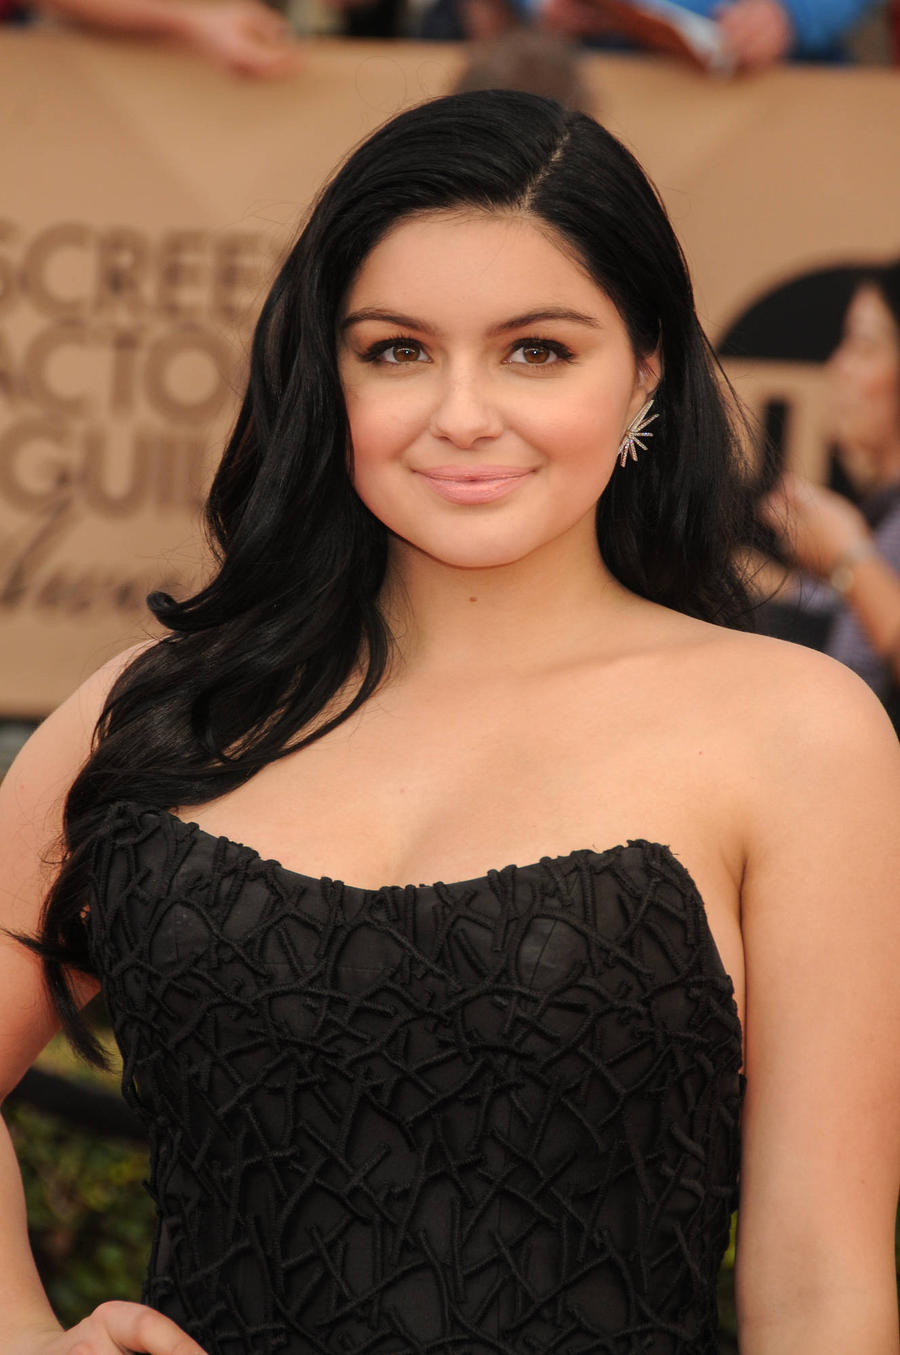 Ariel Winter Reunites With Boyfriend